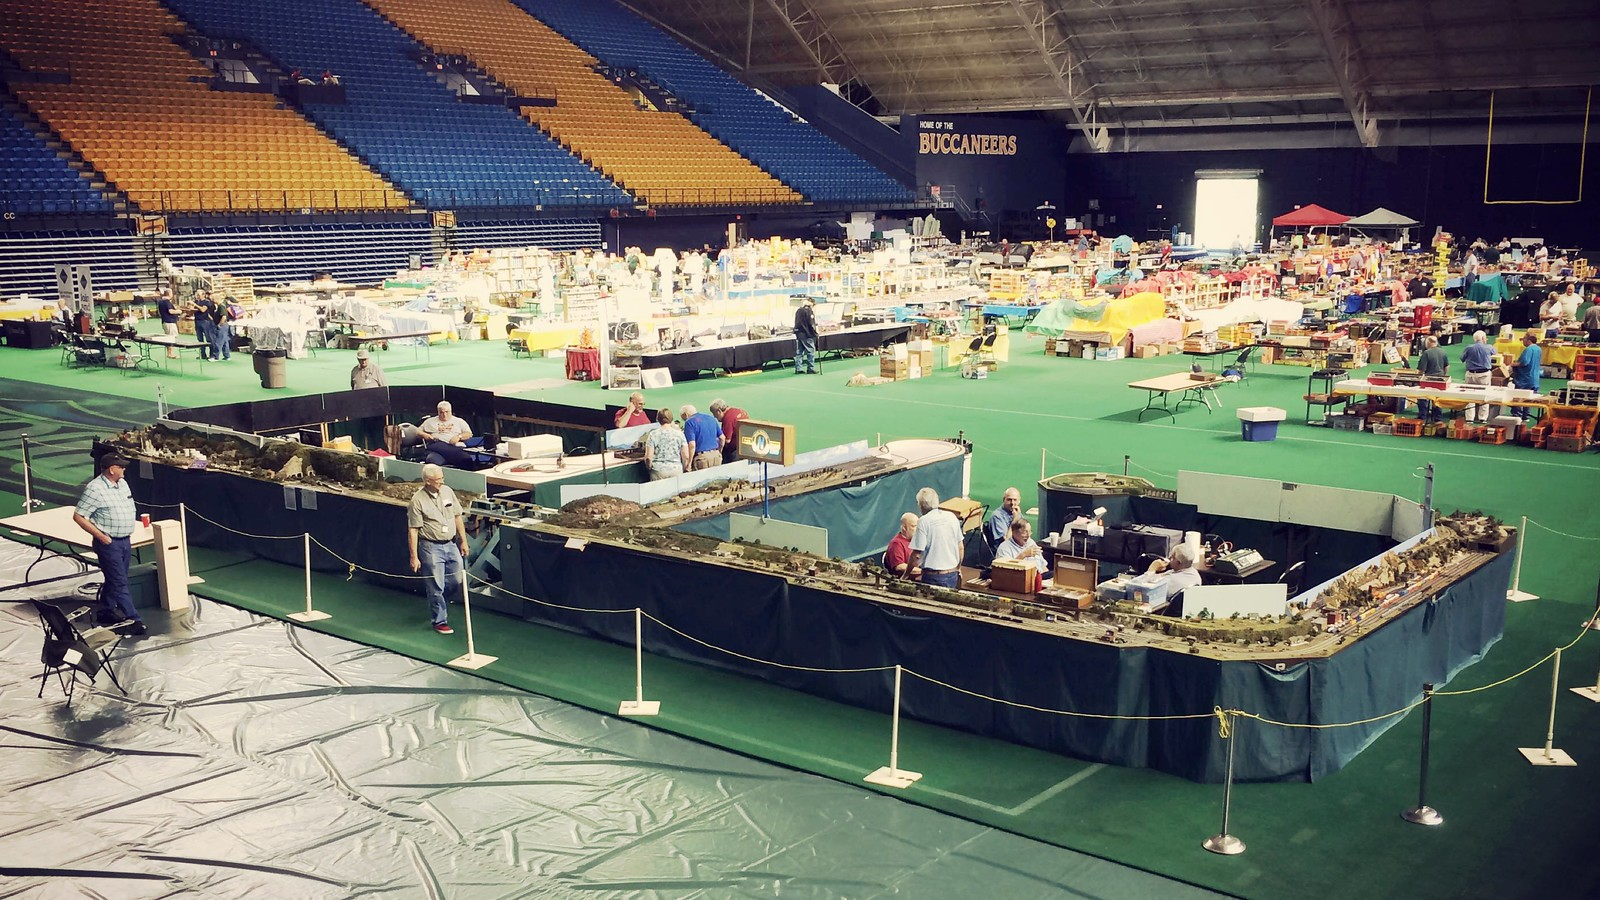 The North Raleigh Model Train Club (NRMRC) along with the Lynchburg Area N Scalers (LANS) participated in the Second Annual Train Show at East Tennessee State University (ETSU) on Friday June 2nd - Saturday June 3rd sponsored by the George L. Carter Museum and the ET&WNCRR (Tweetsie) Historical Society